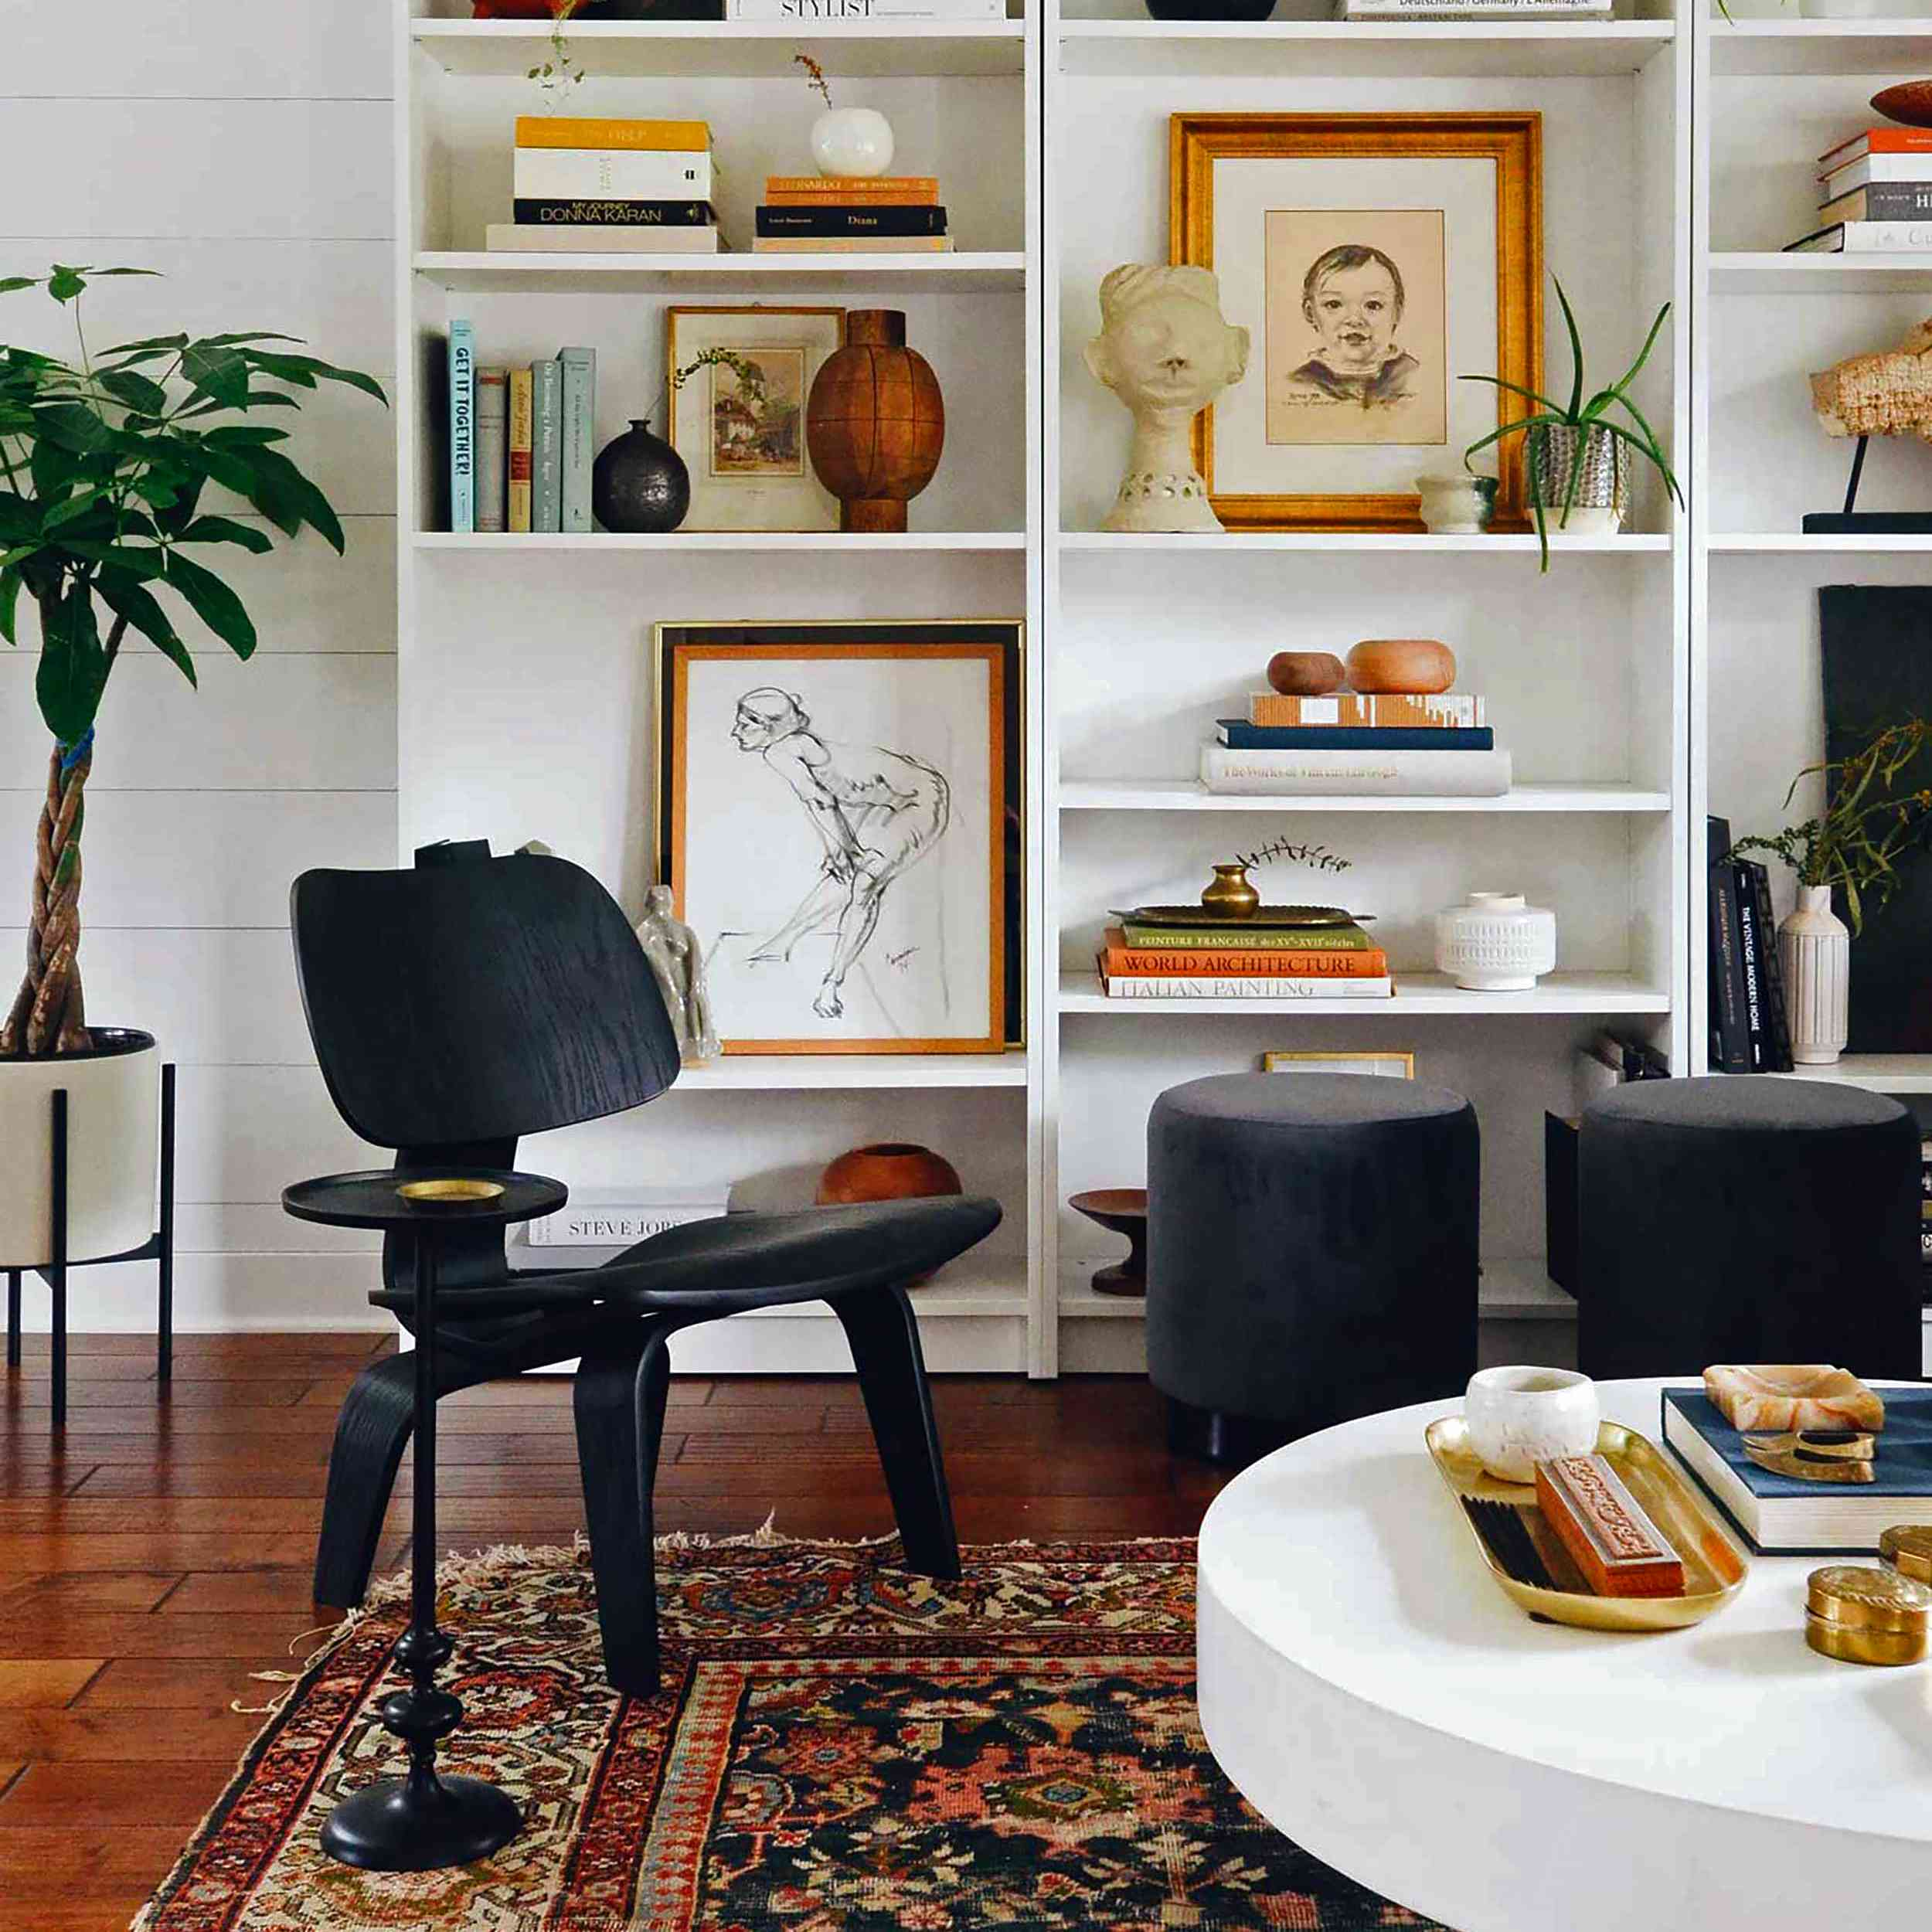 15 Eclectic Design And Home Decor Ideas